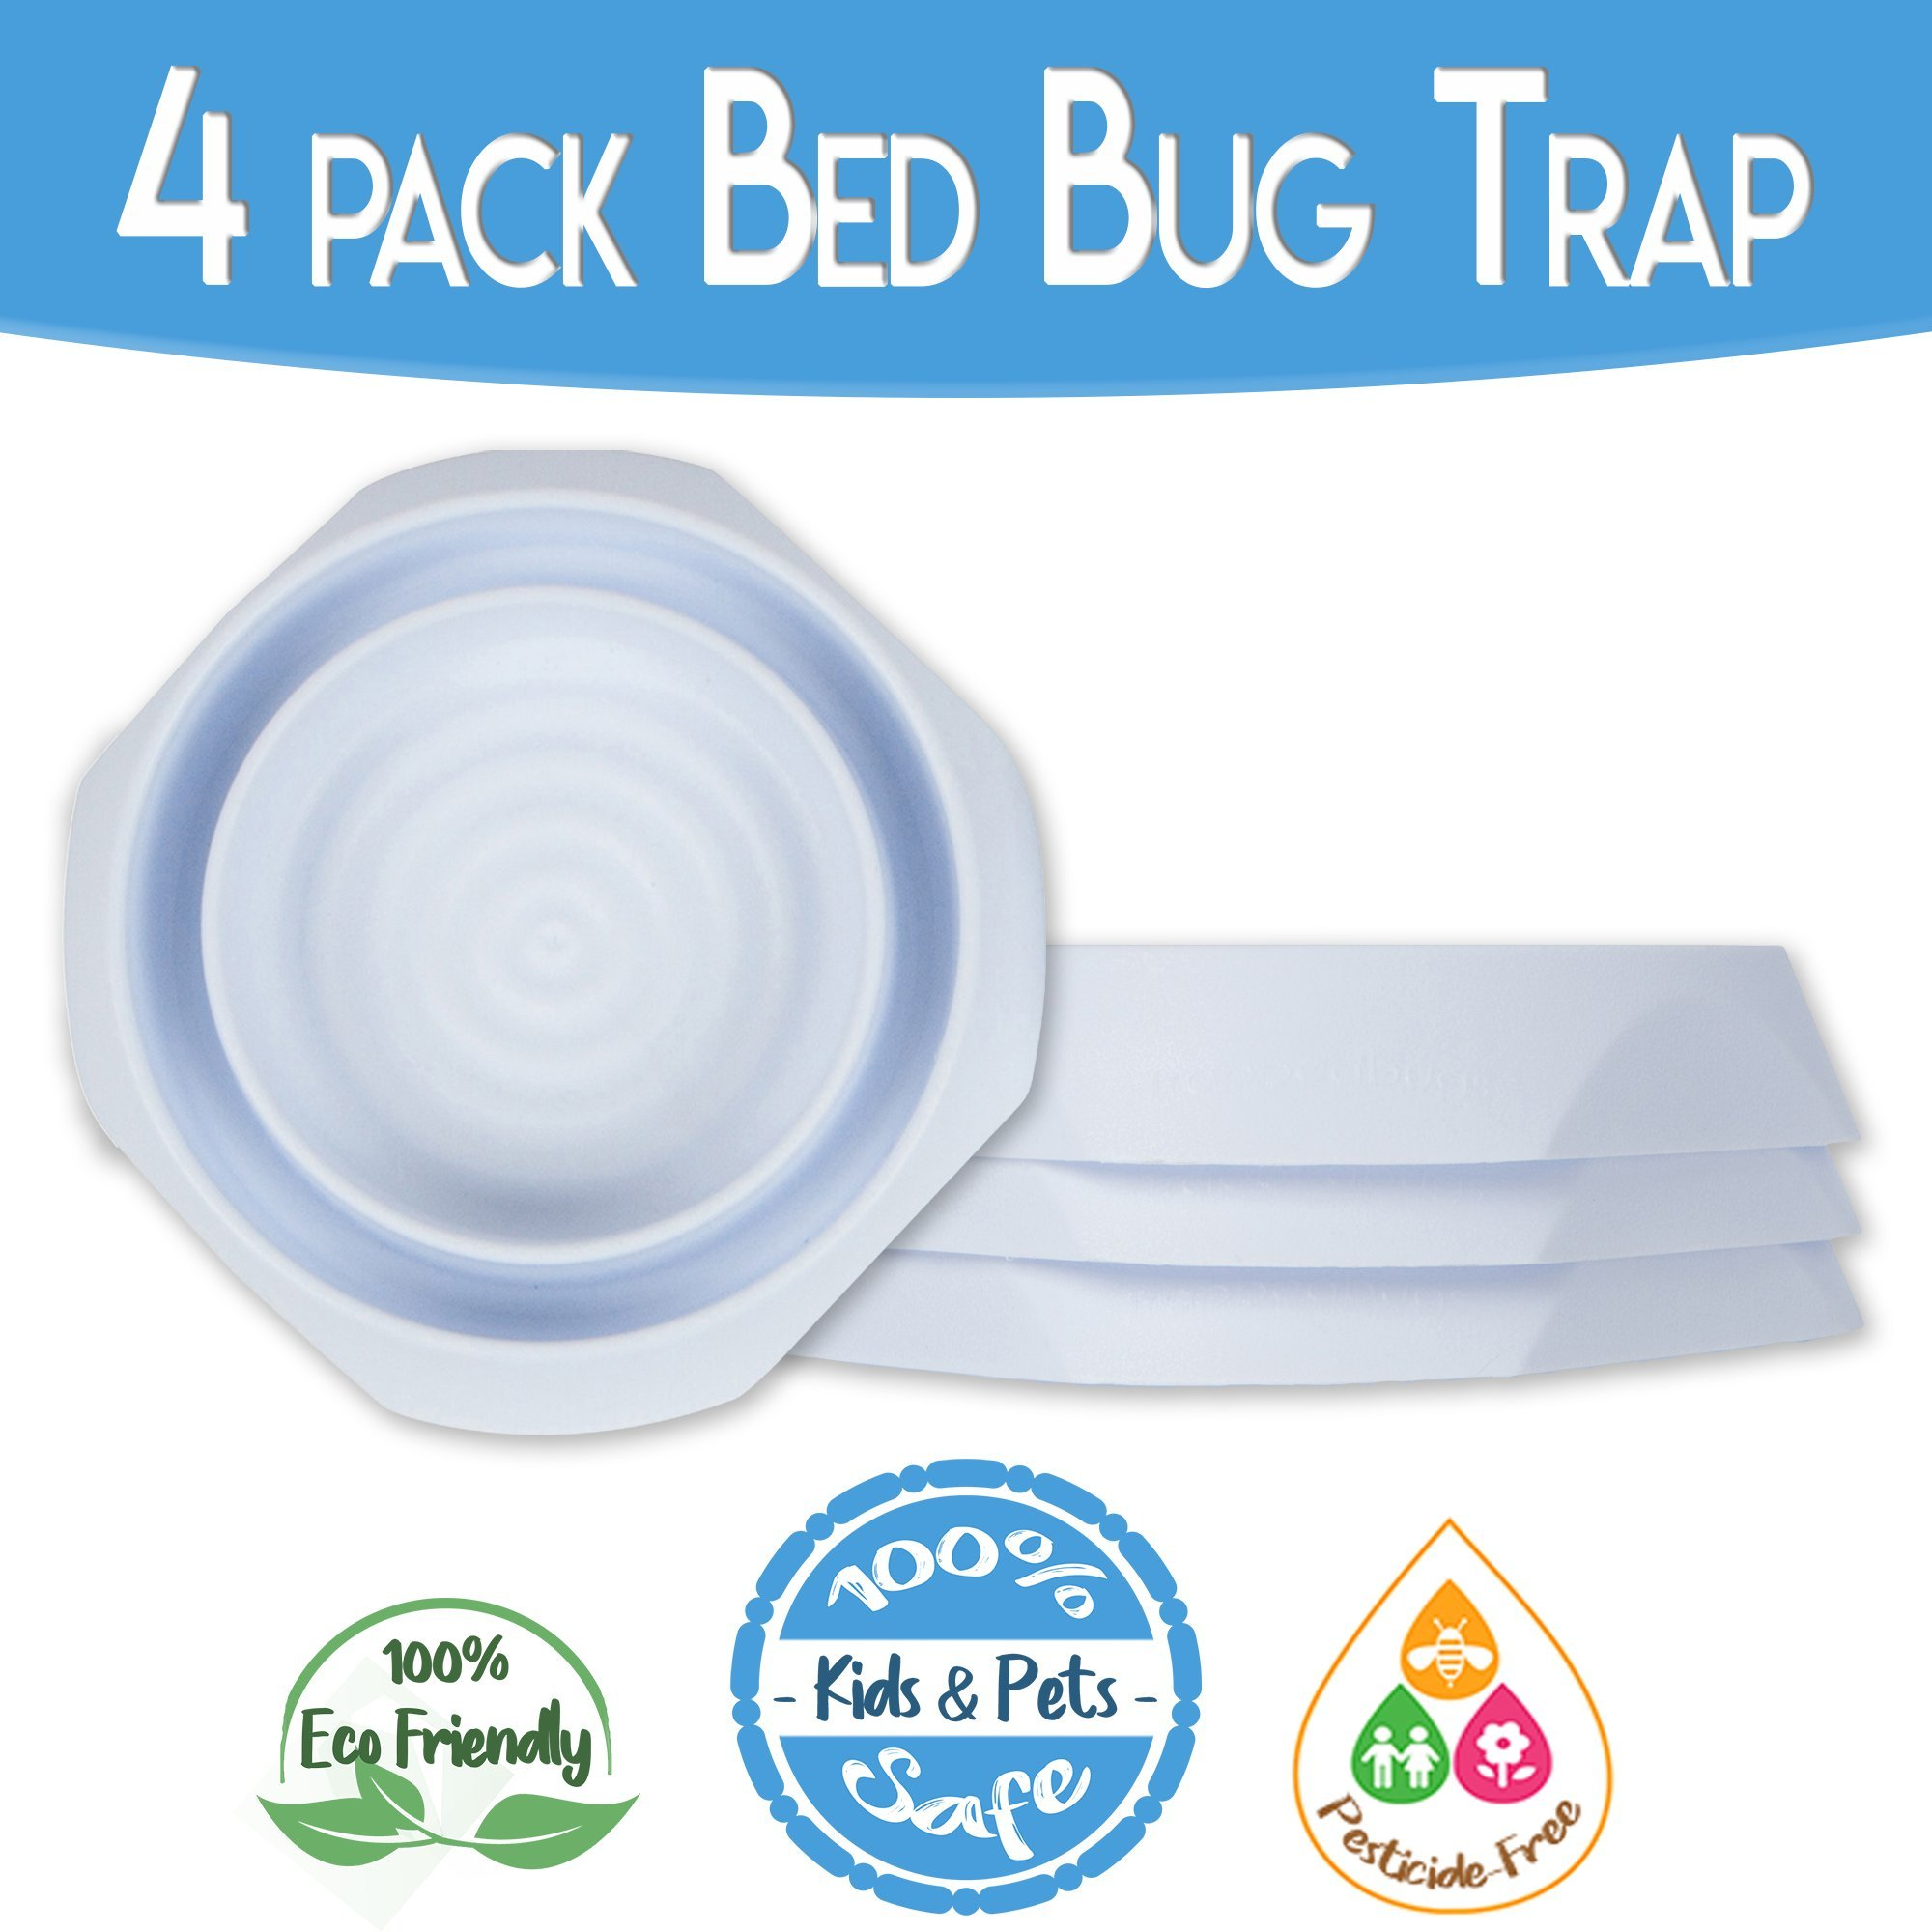 Bed Bug Interceptors 4 Pack Bed Bug Trap. Revolutionary Design are The Most Reliable Bed Bug Traps on The Market